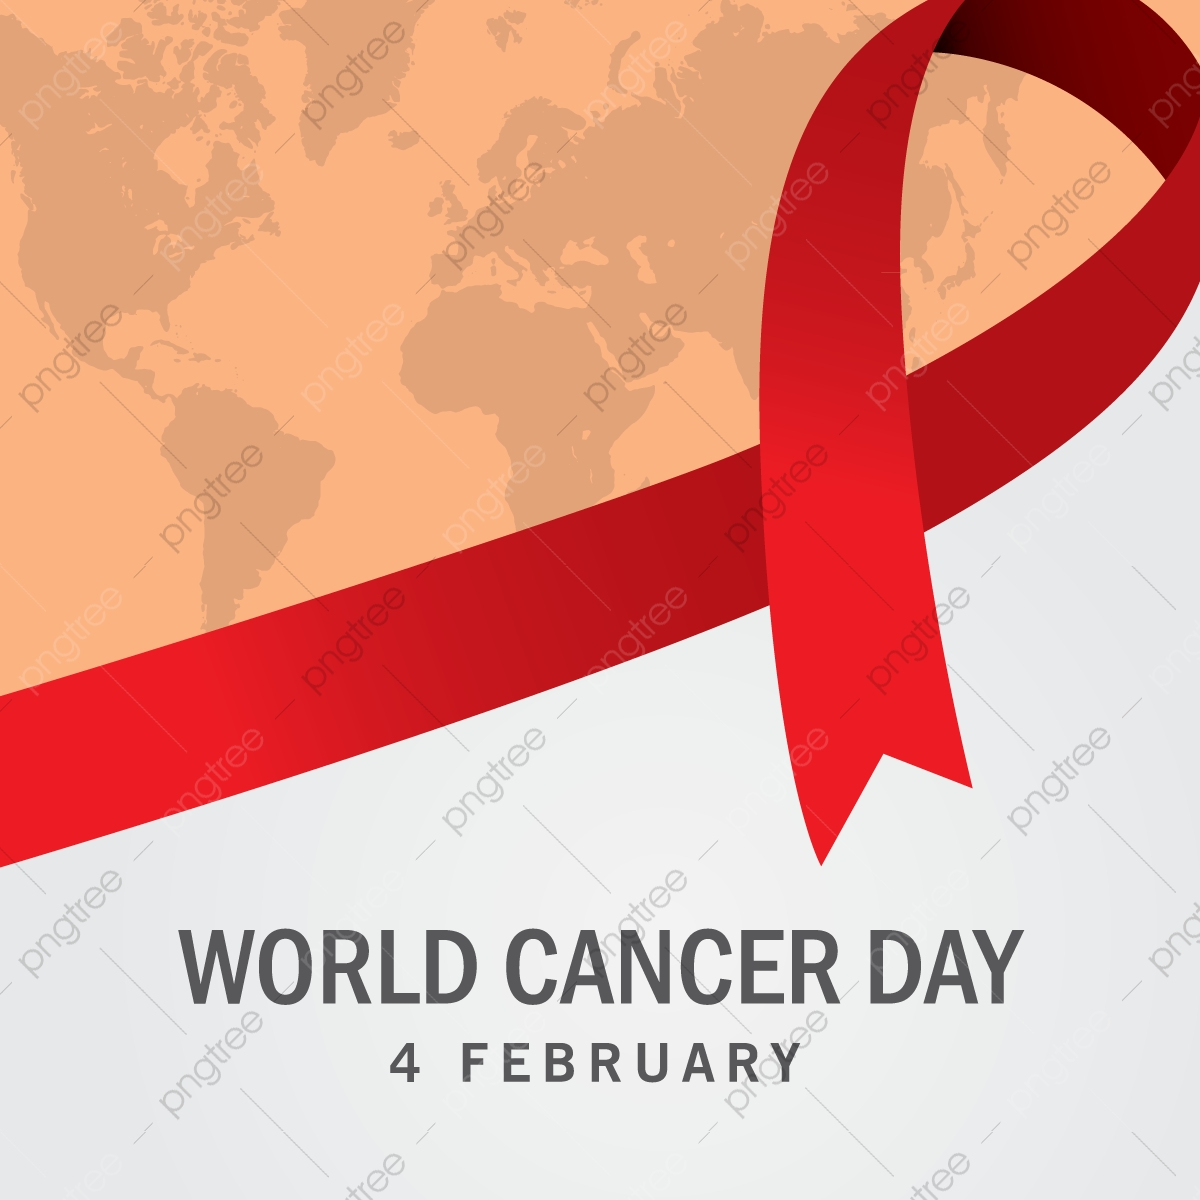 34f1ee2eeac Commercial use resource. Upgrade to Premium plan and get license  authorization.UpgradeNow · February 4, world cancer day ...